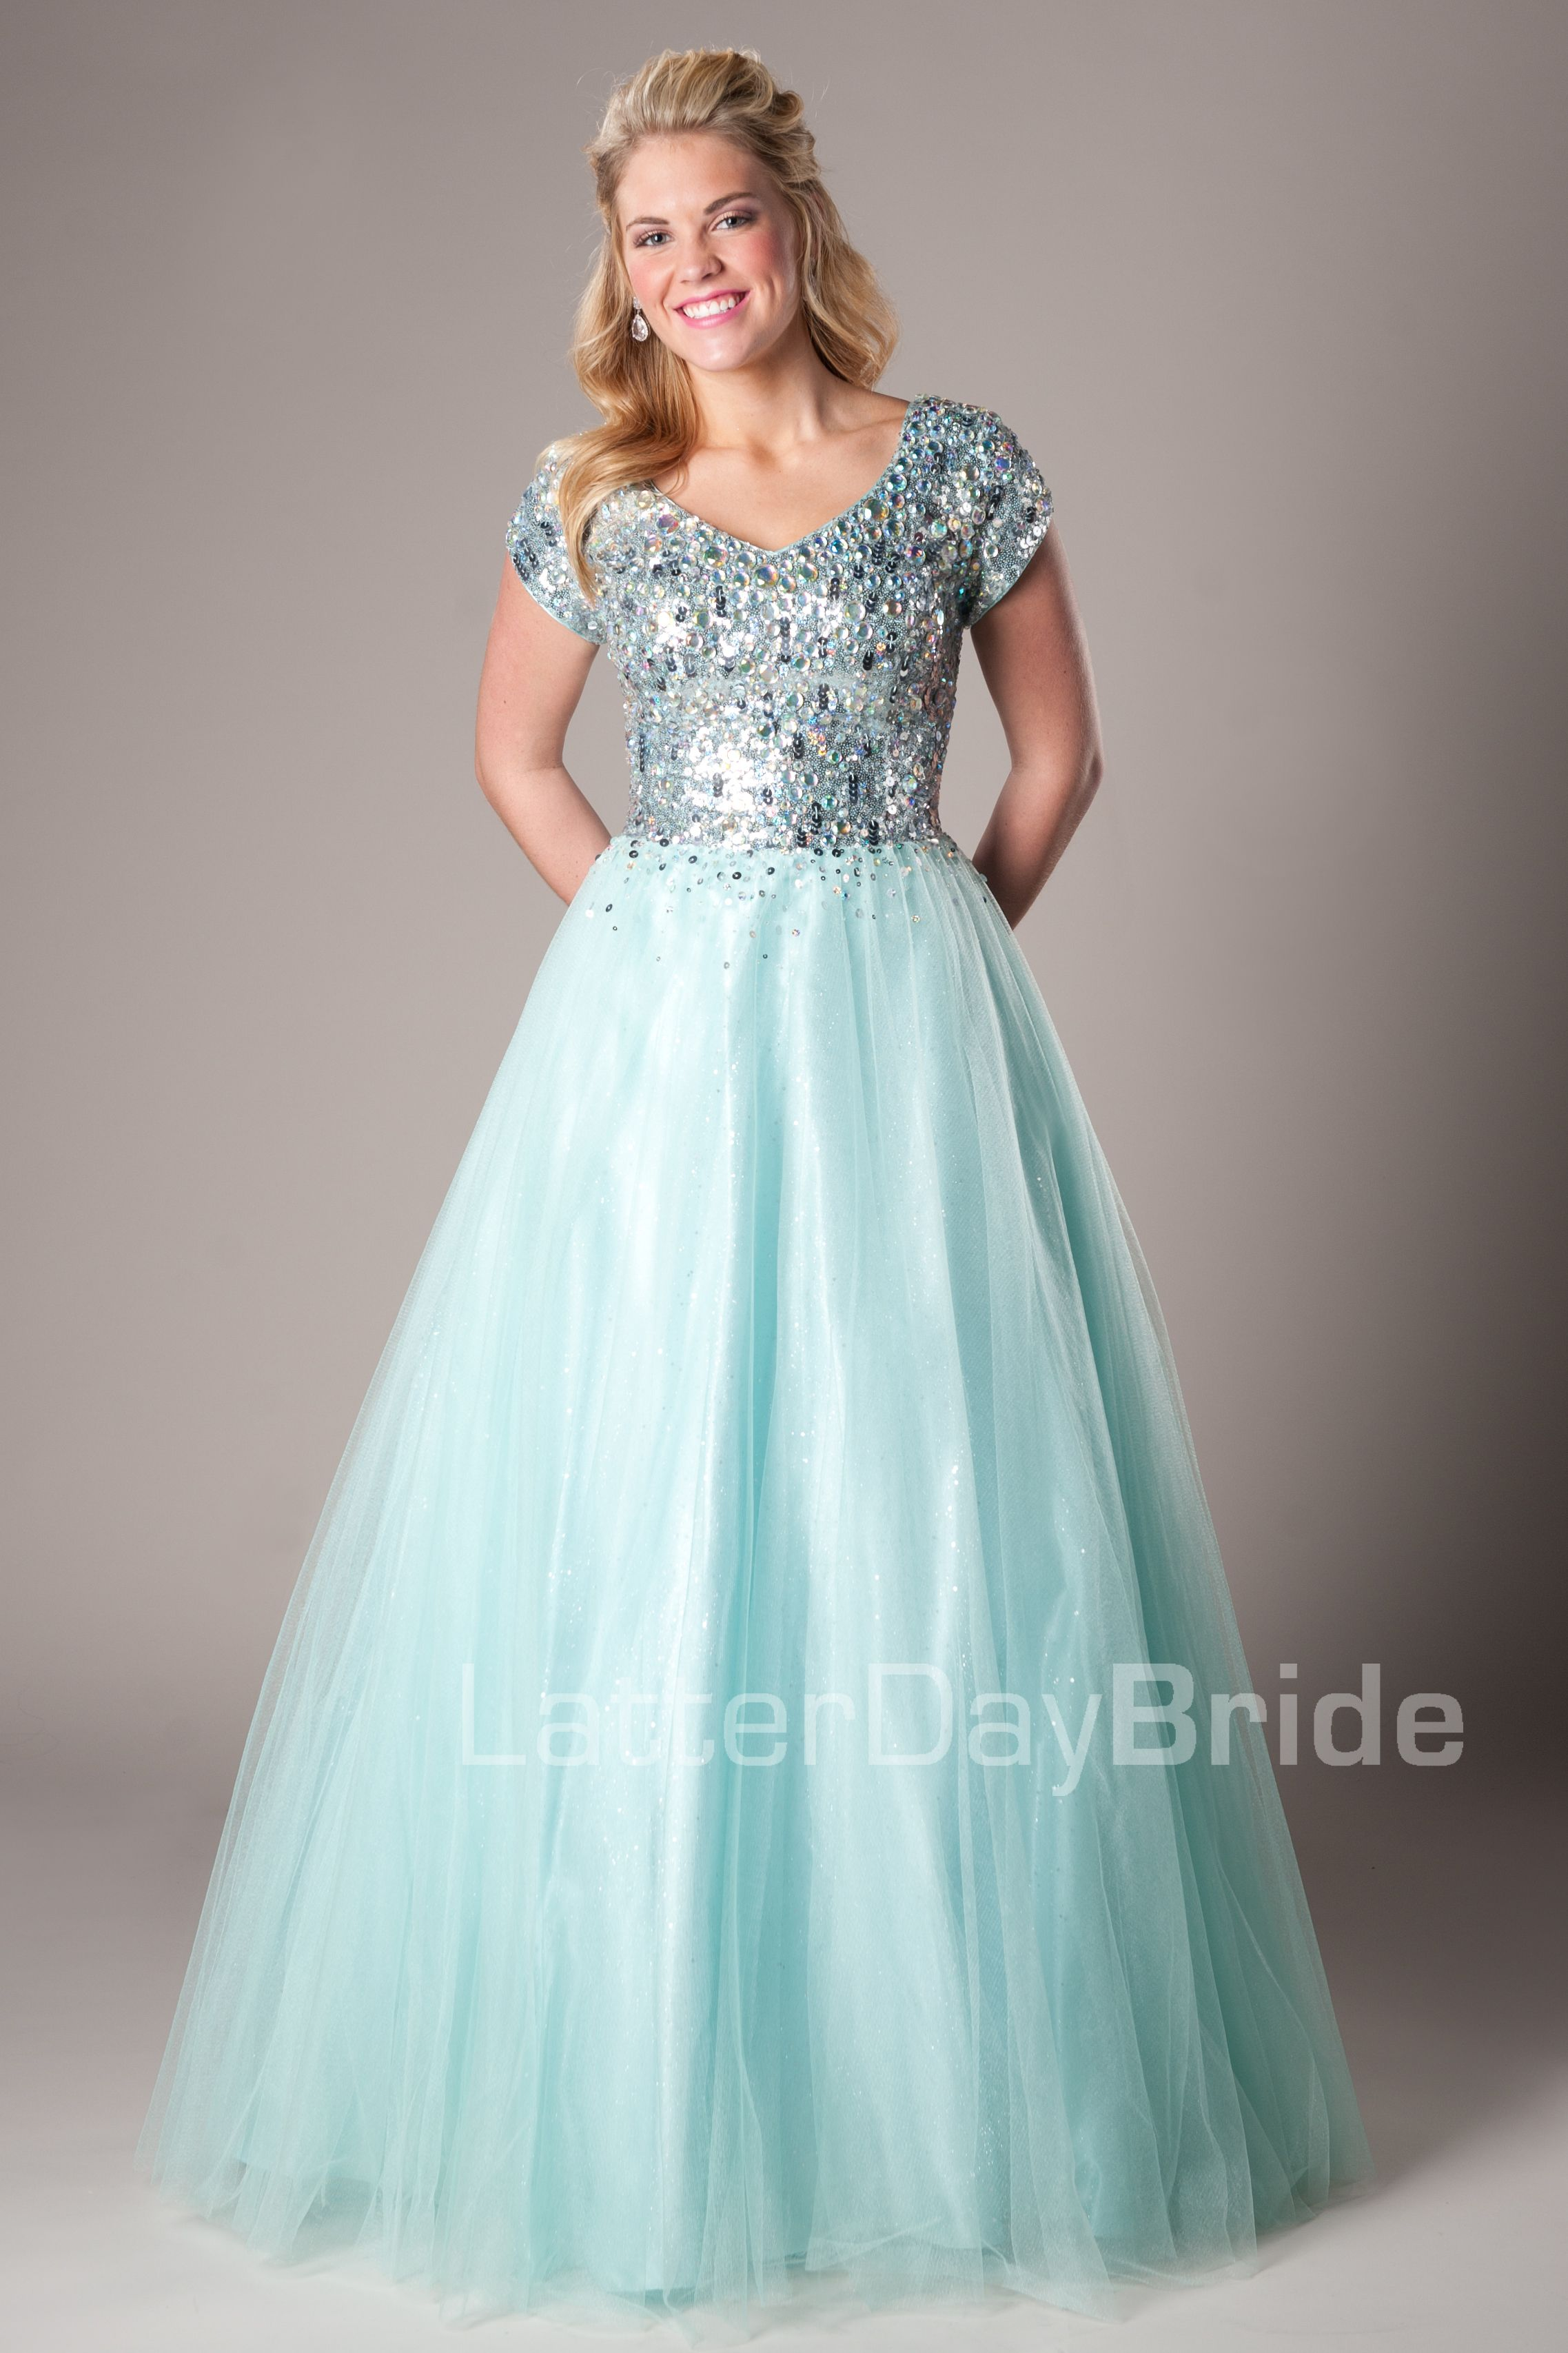 Dress for prom dance